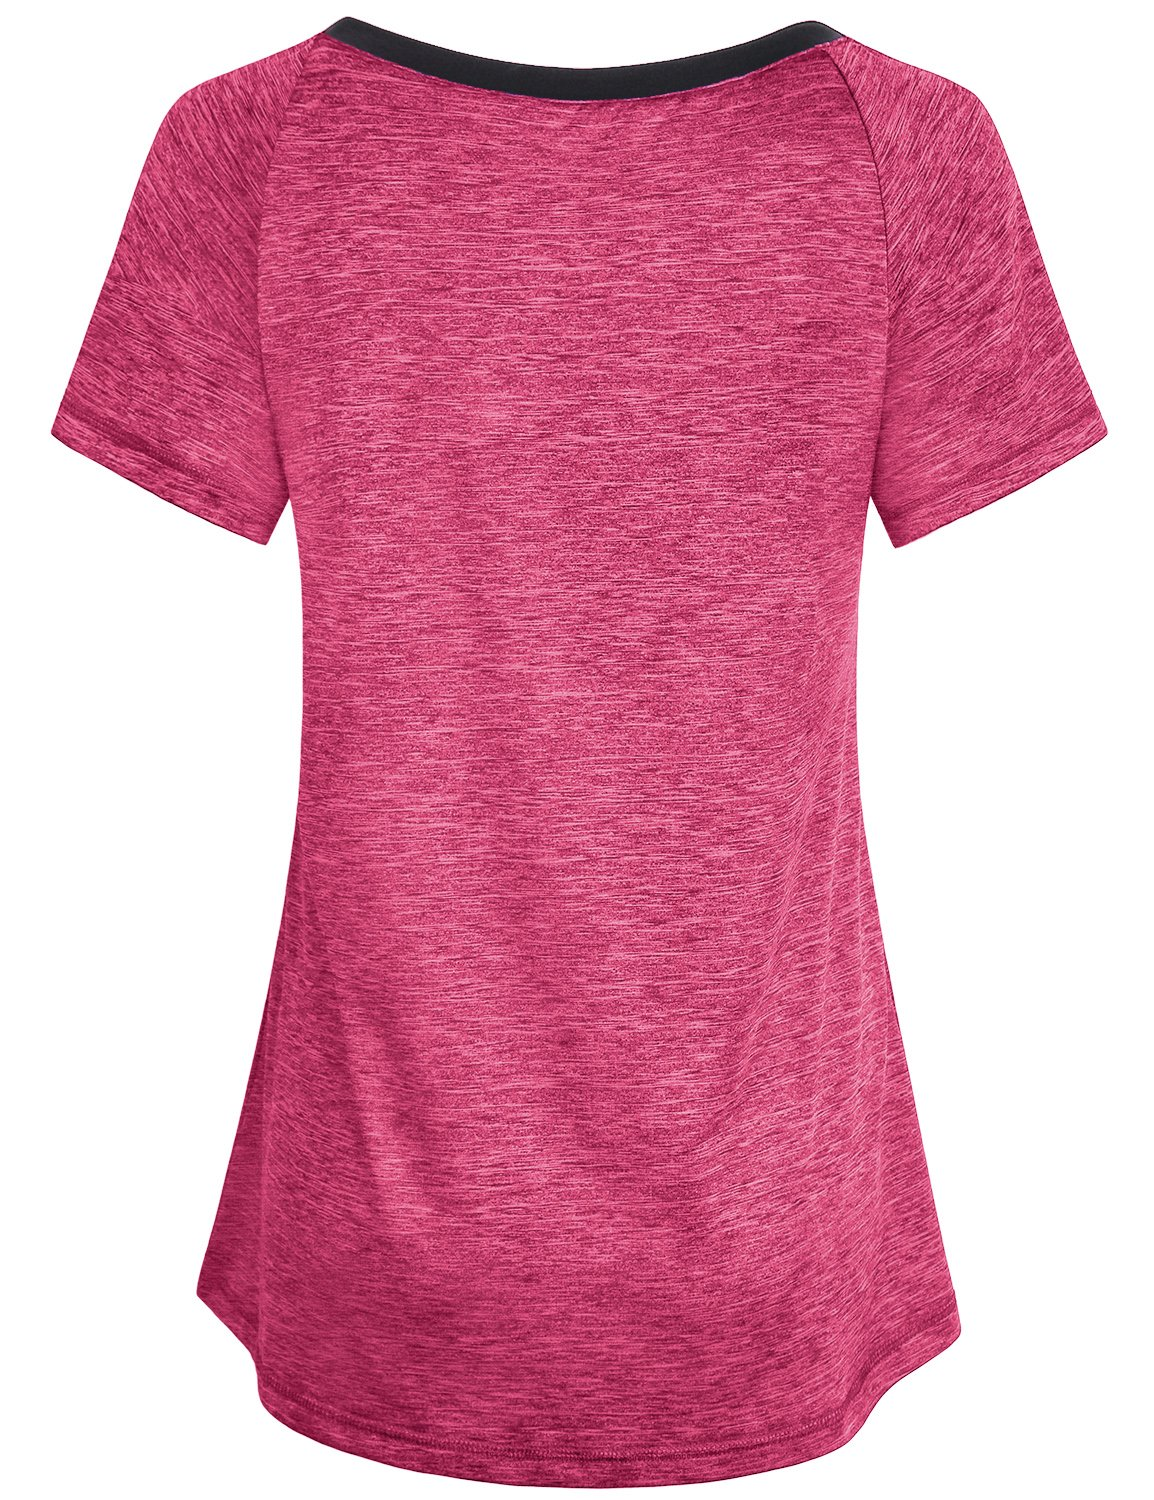 Miusey Workout Clothes for Women, Girls Quick Dry Shirts Short Raglan Sleeve V Neck Yoga Running Tunic Lightweight Top Casual Summer Hipster Fashion Primary Fitness Tees Red M by Miusey (Image #2)